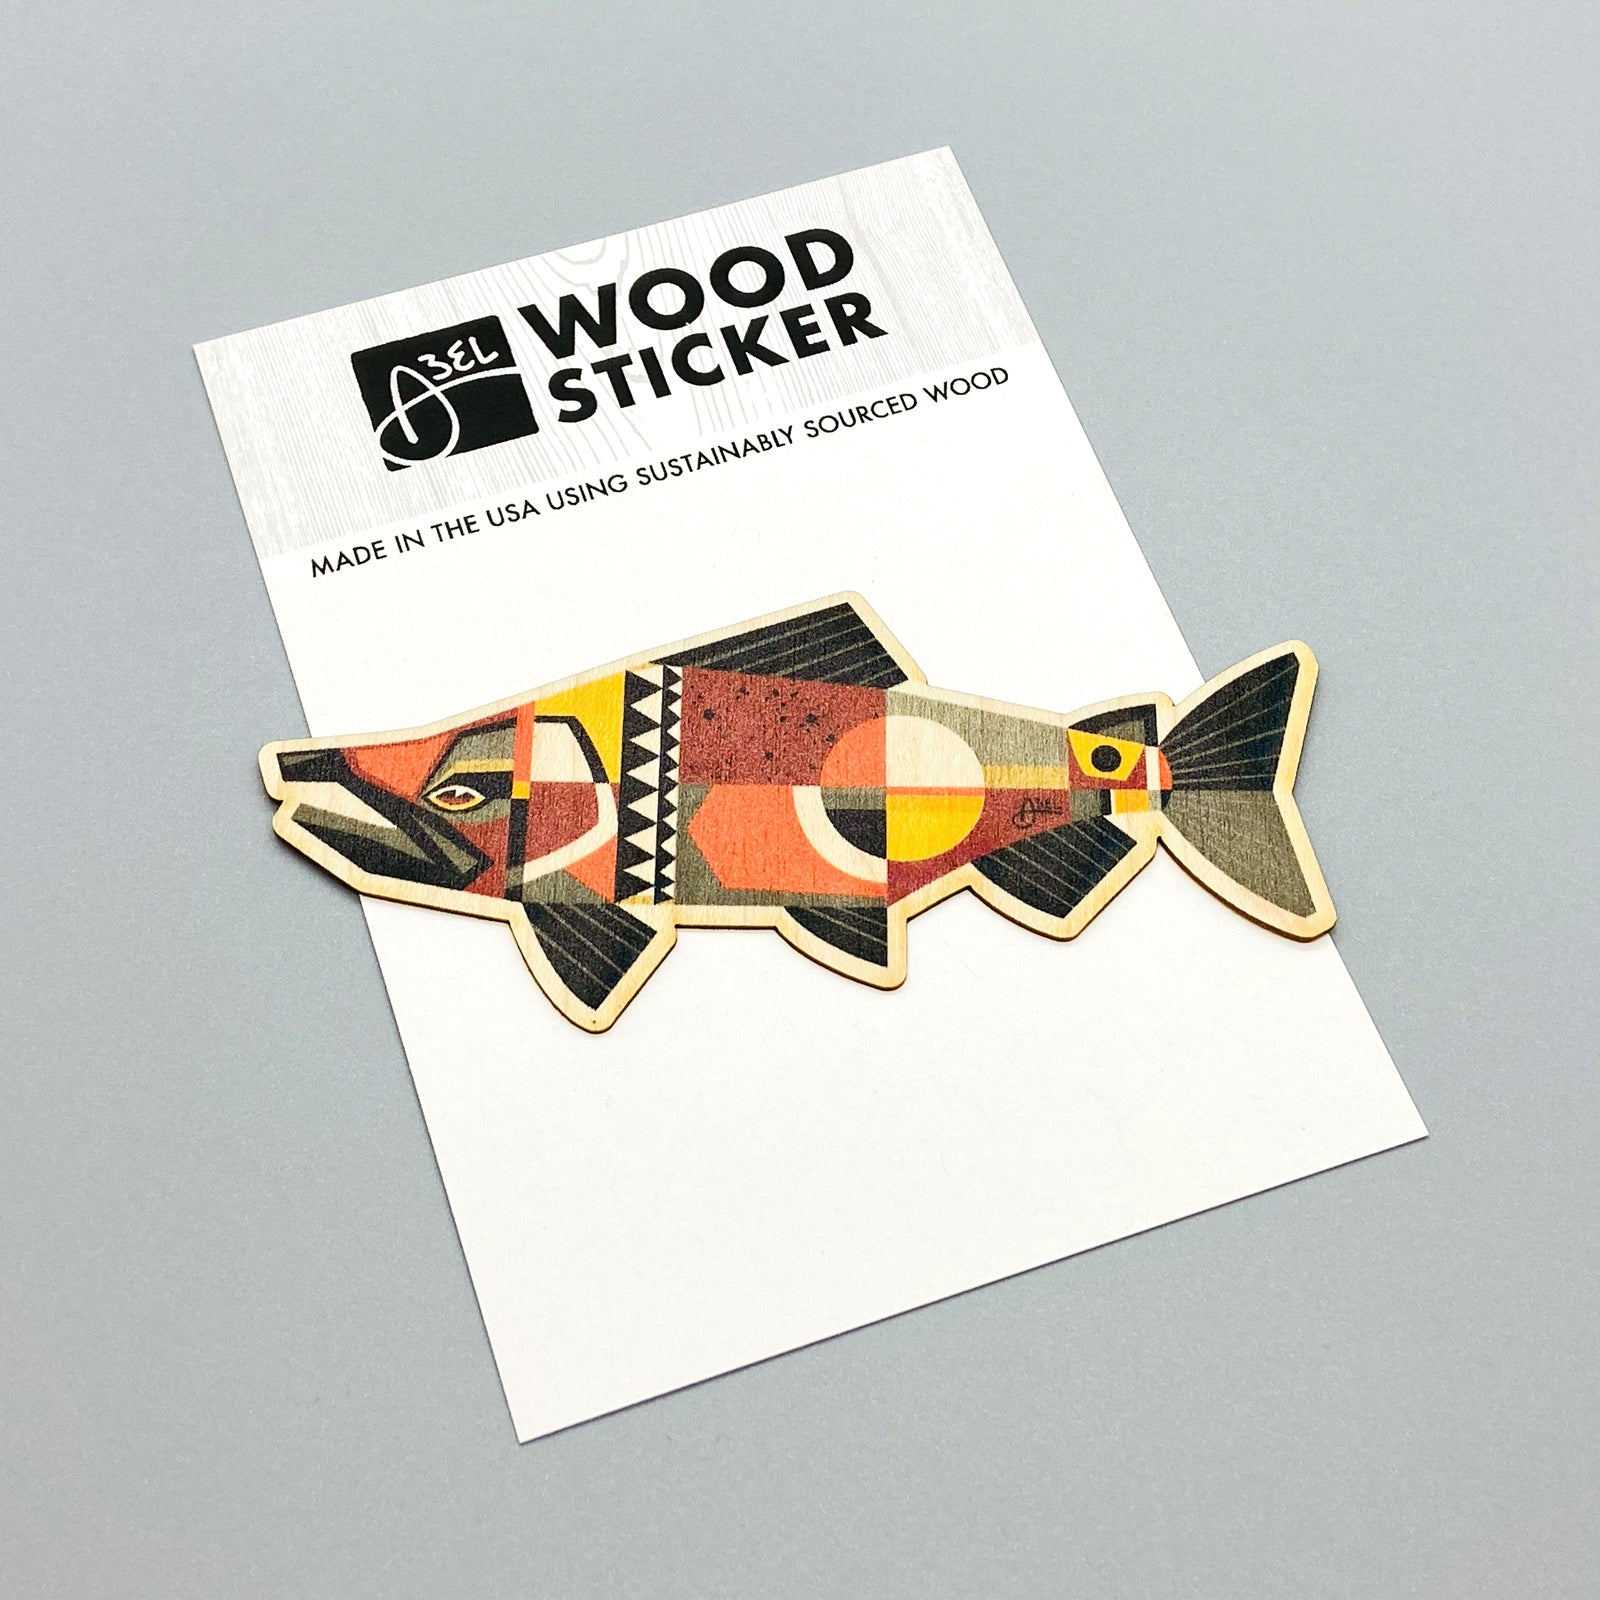 Wood Sticker: Chinook